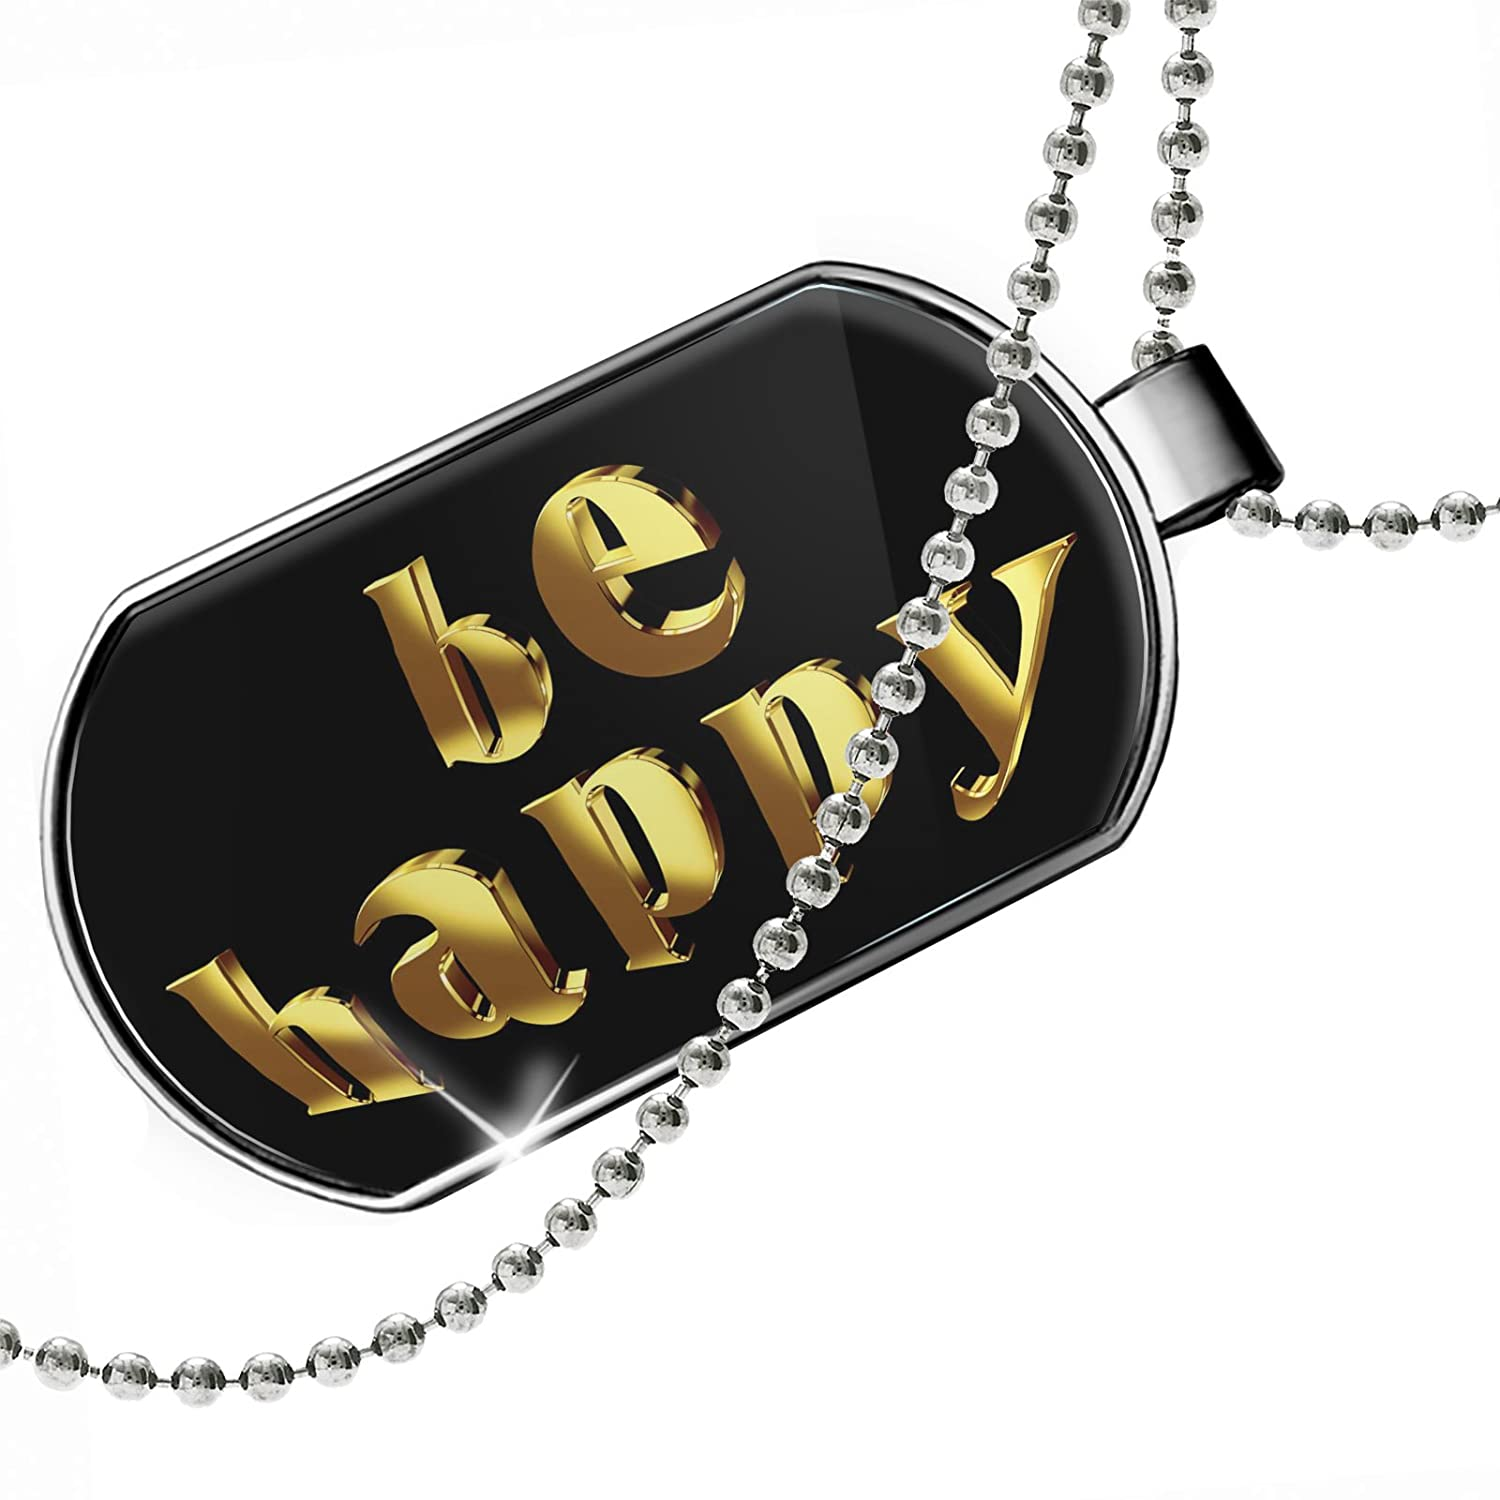 NEONBLOND Personalized Name Engraved Be Happy Printed Gold Looking Lettering Dogtag Necklace